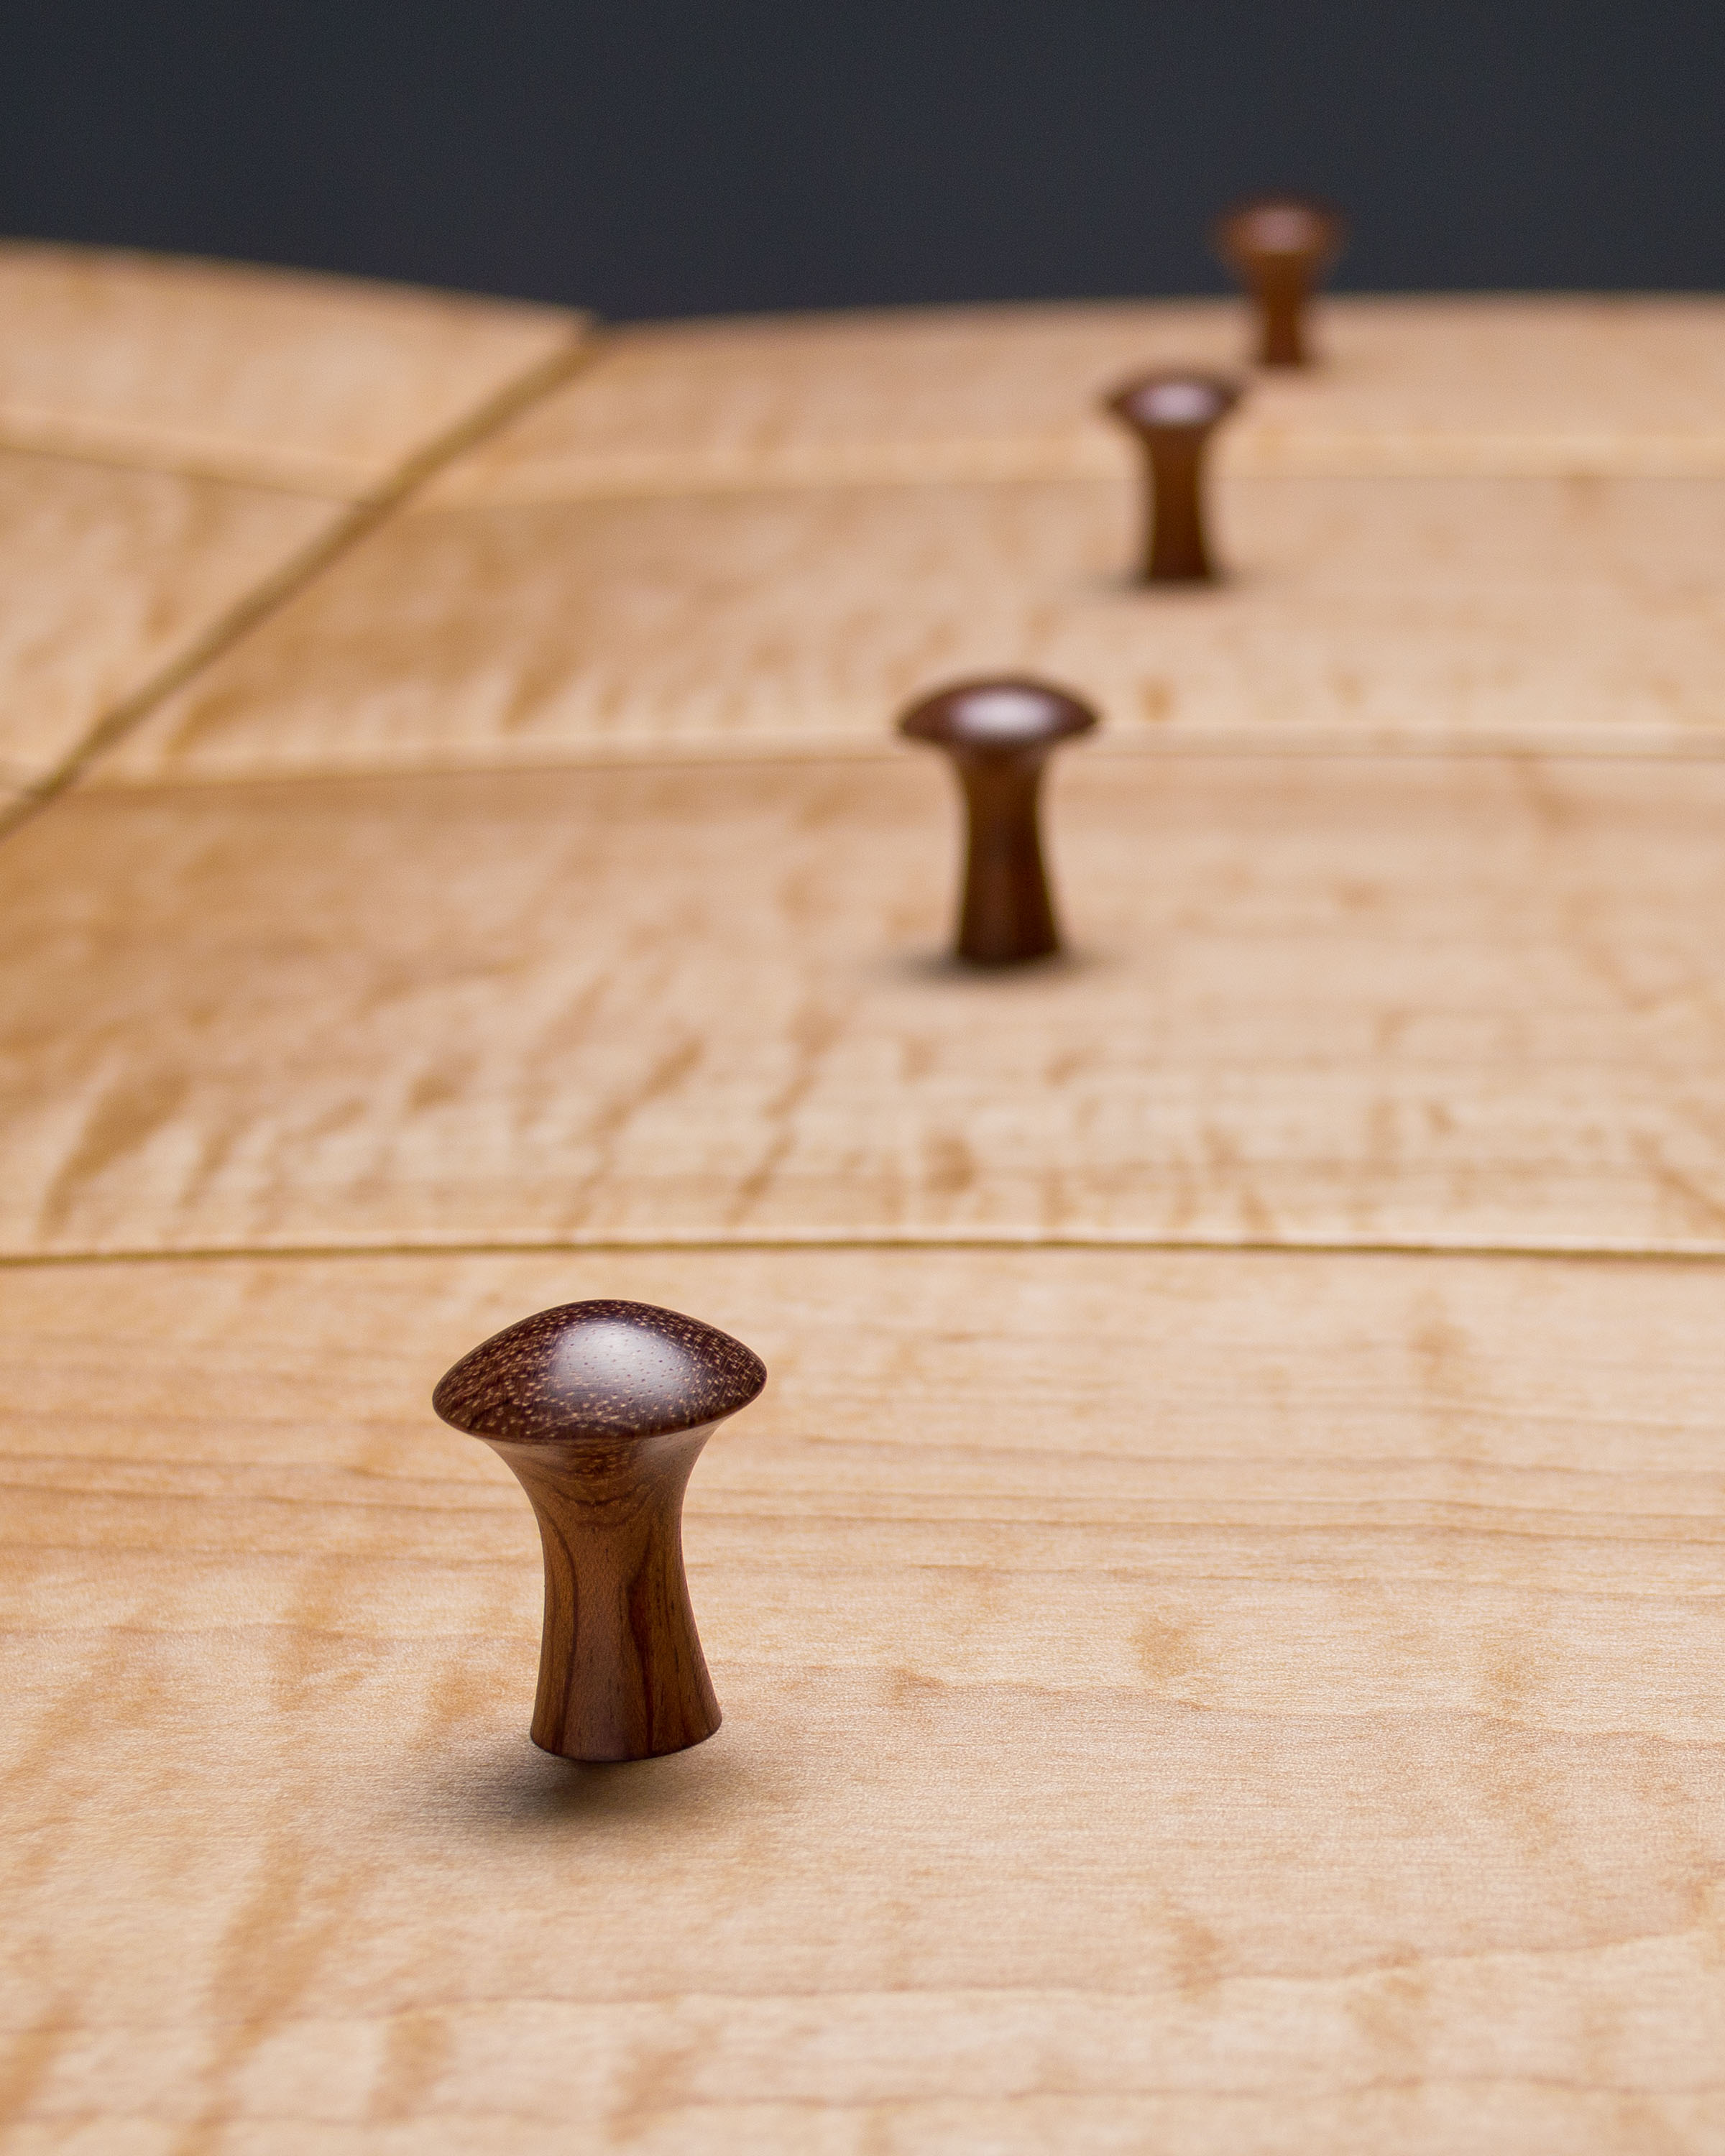 Bubinga was used for the turned knobs, which are secured to the drawer fronts with wedged through tenons.